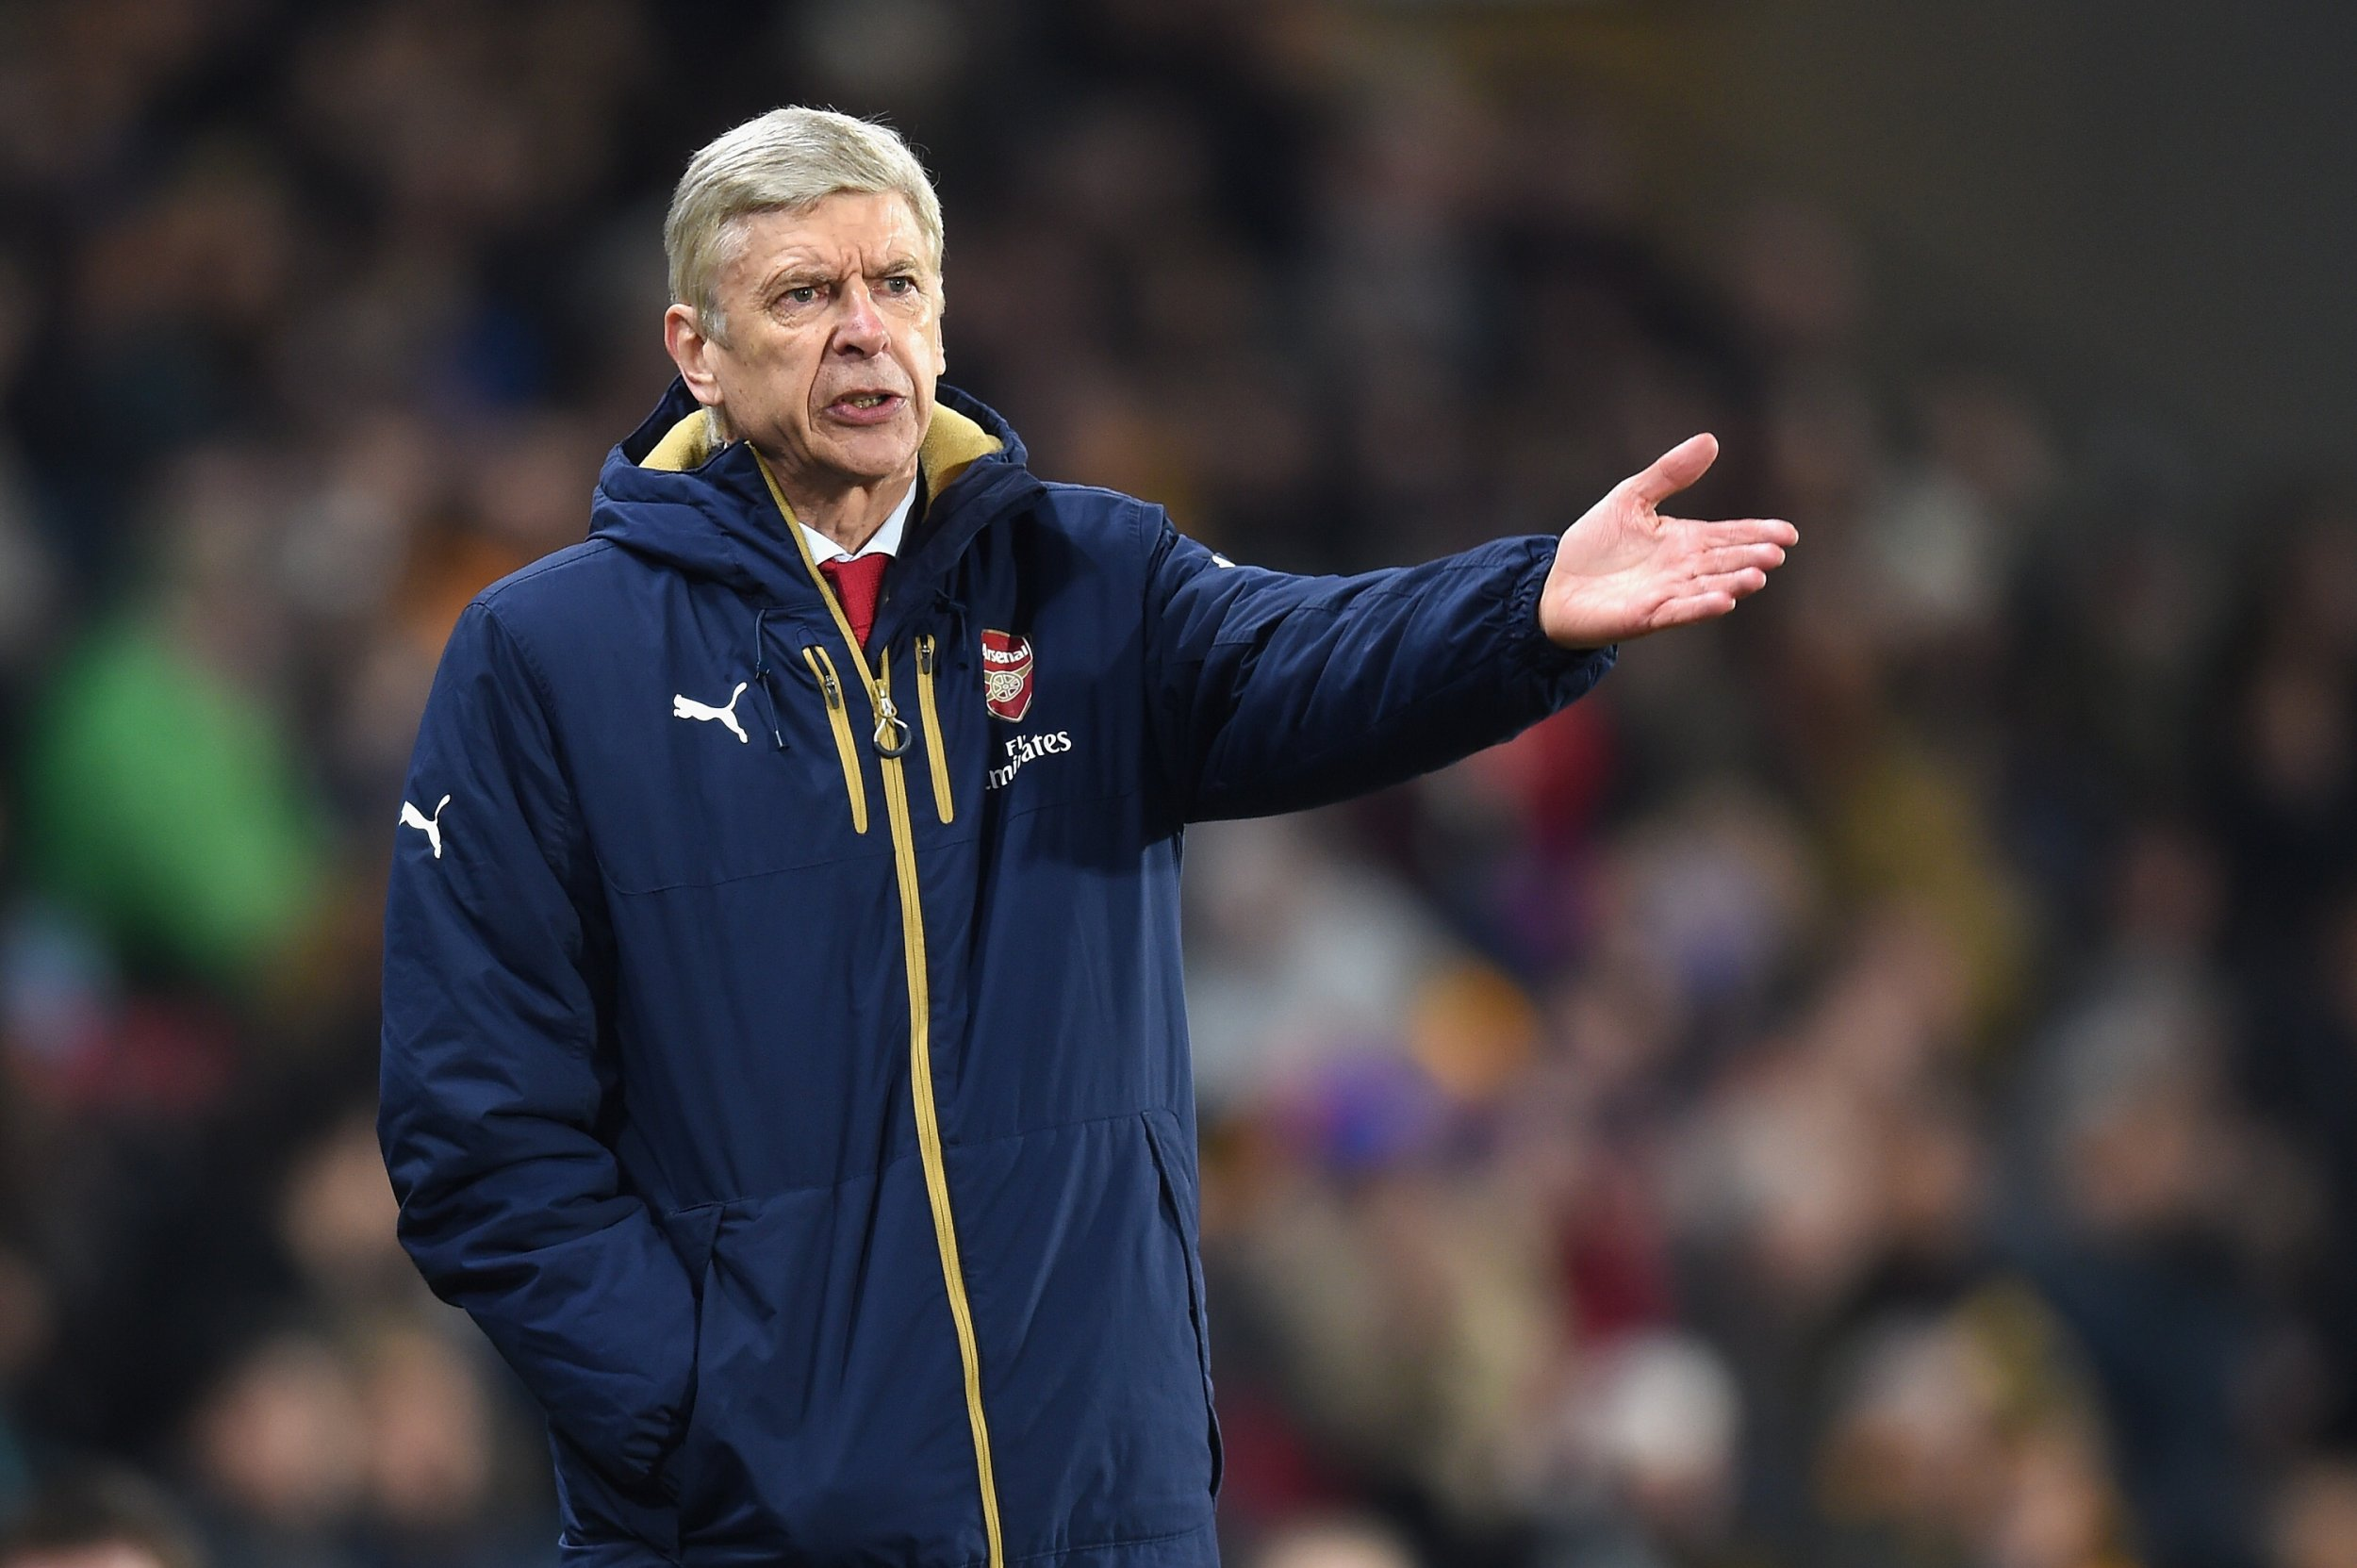 Arsene Wenger is under pressure at Arsenal following a run of defeats.